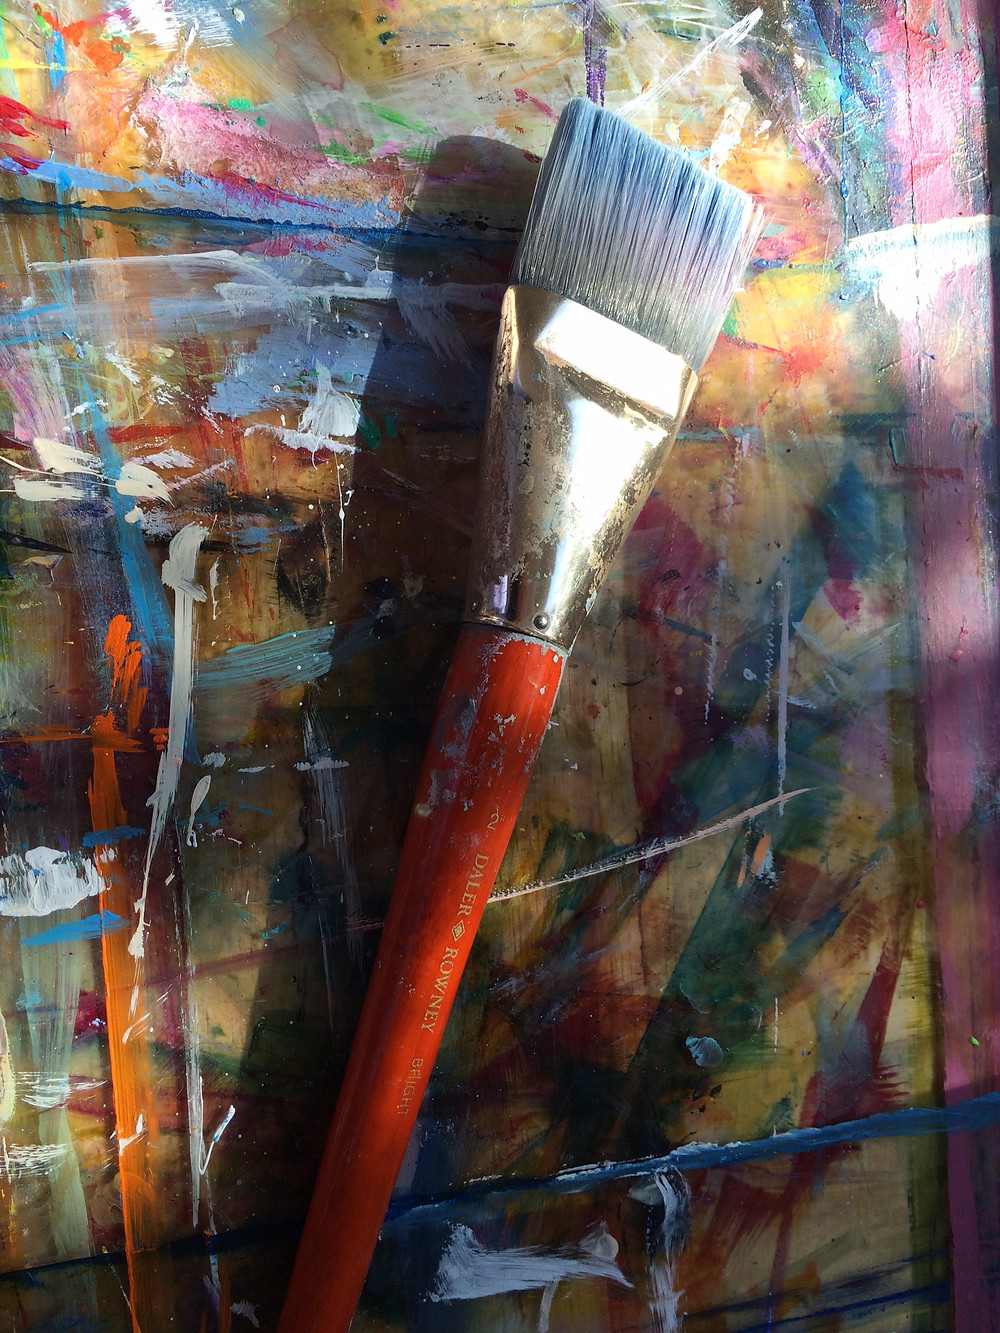 My favorite paintbrush